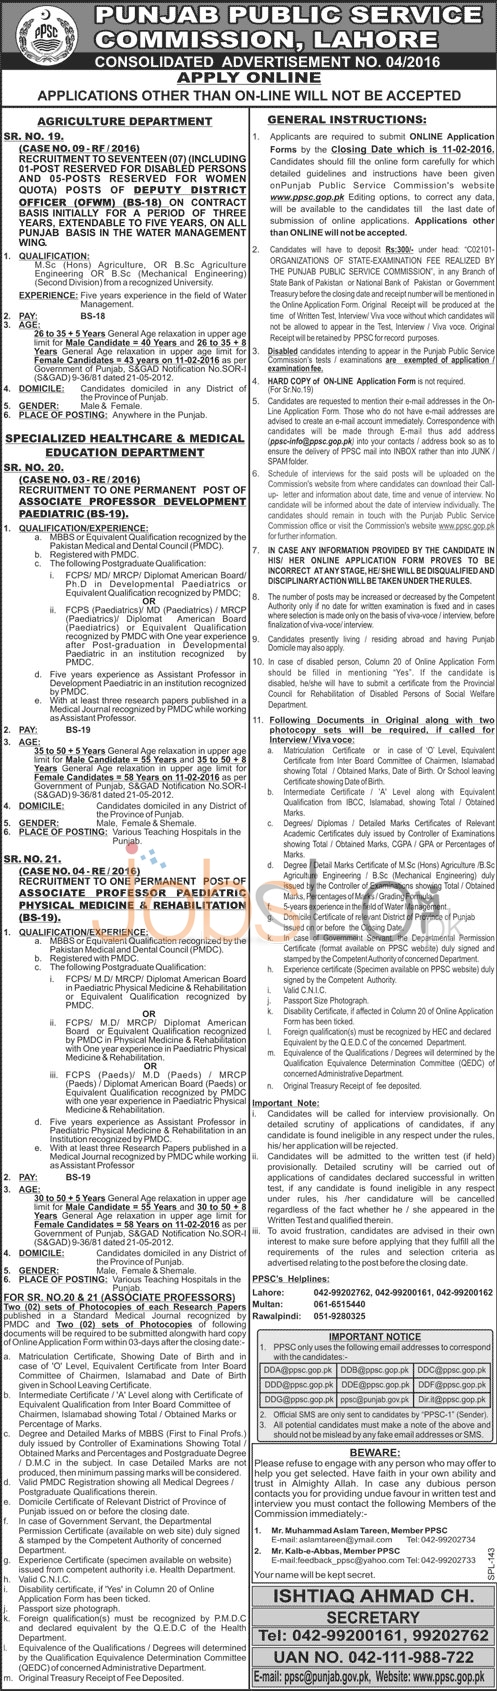 Punjab Public Service Commission Jobs in Punjab 27th January 2016